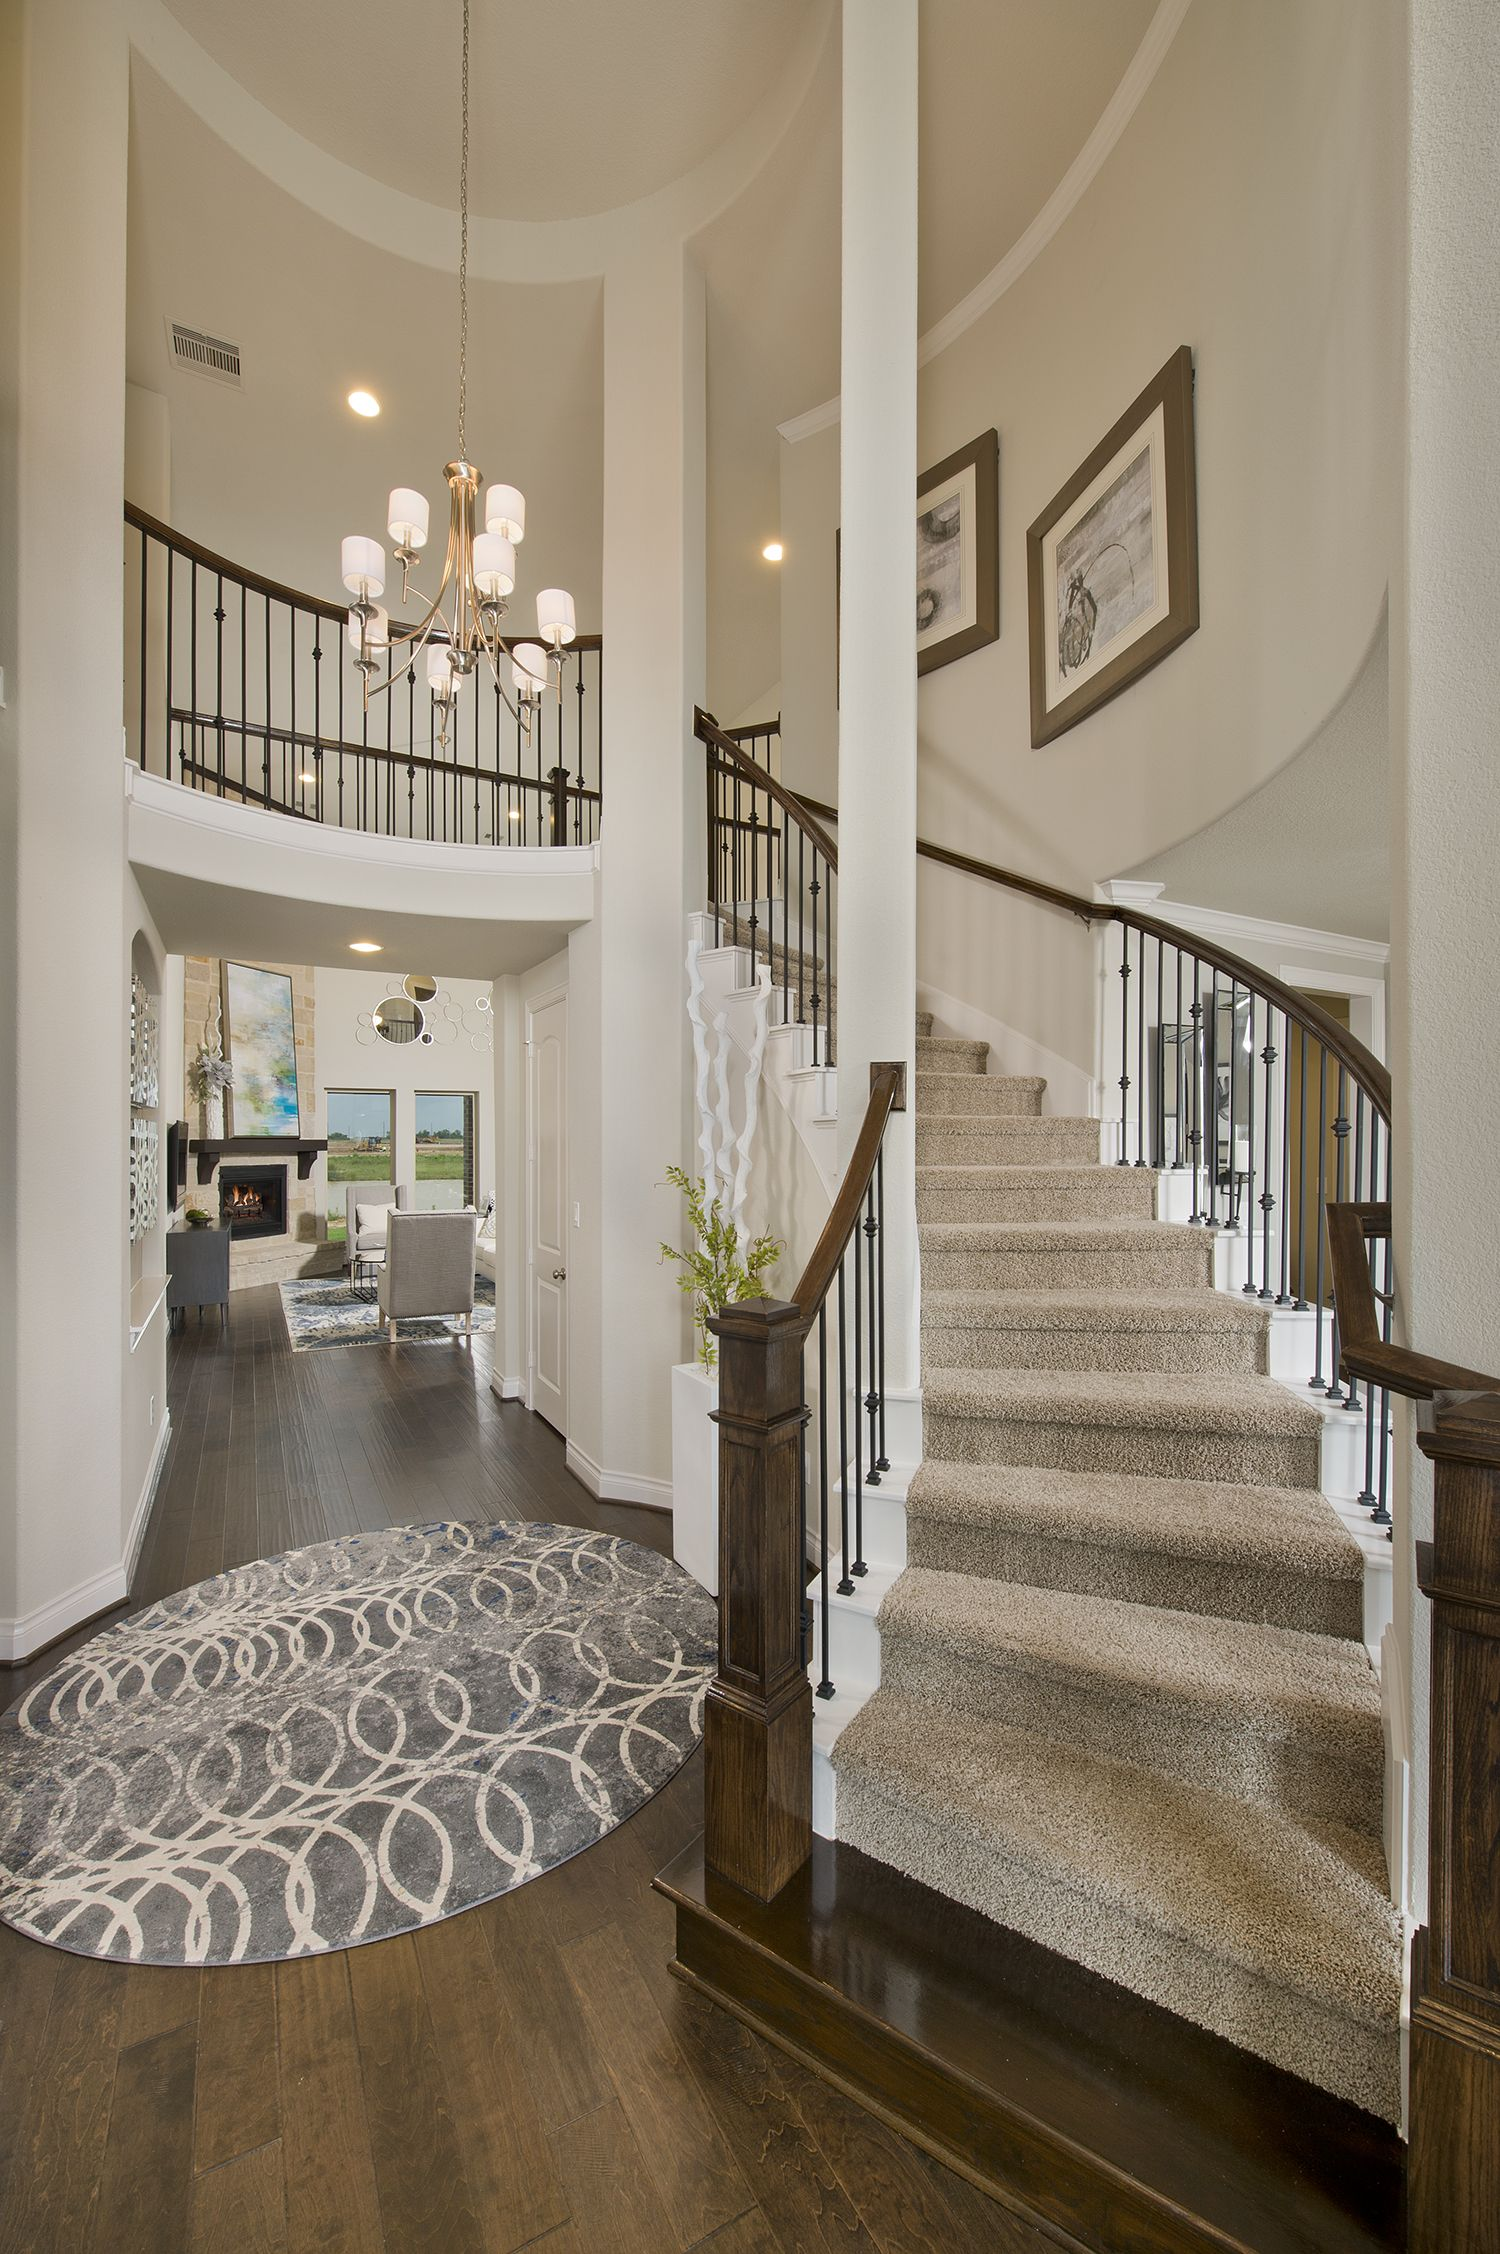 Cross Creek Ranch Model Home Open Daily 4 098 Sq Ft Foyer Grand Staircase Perryhomes Trustedbuilder Homebuying Model Homes Perry Homes New Homes